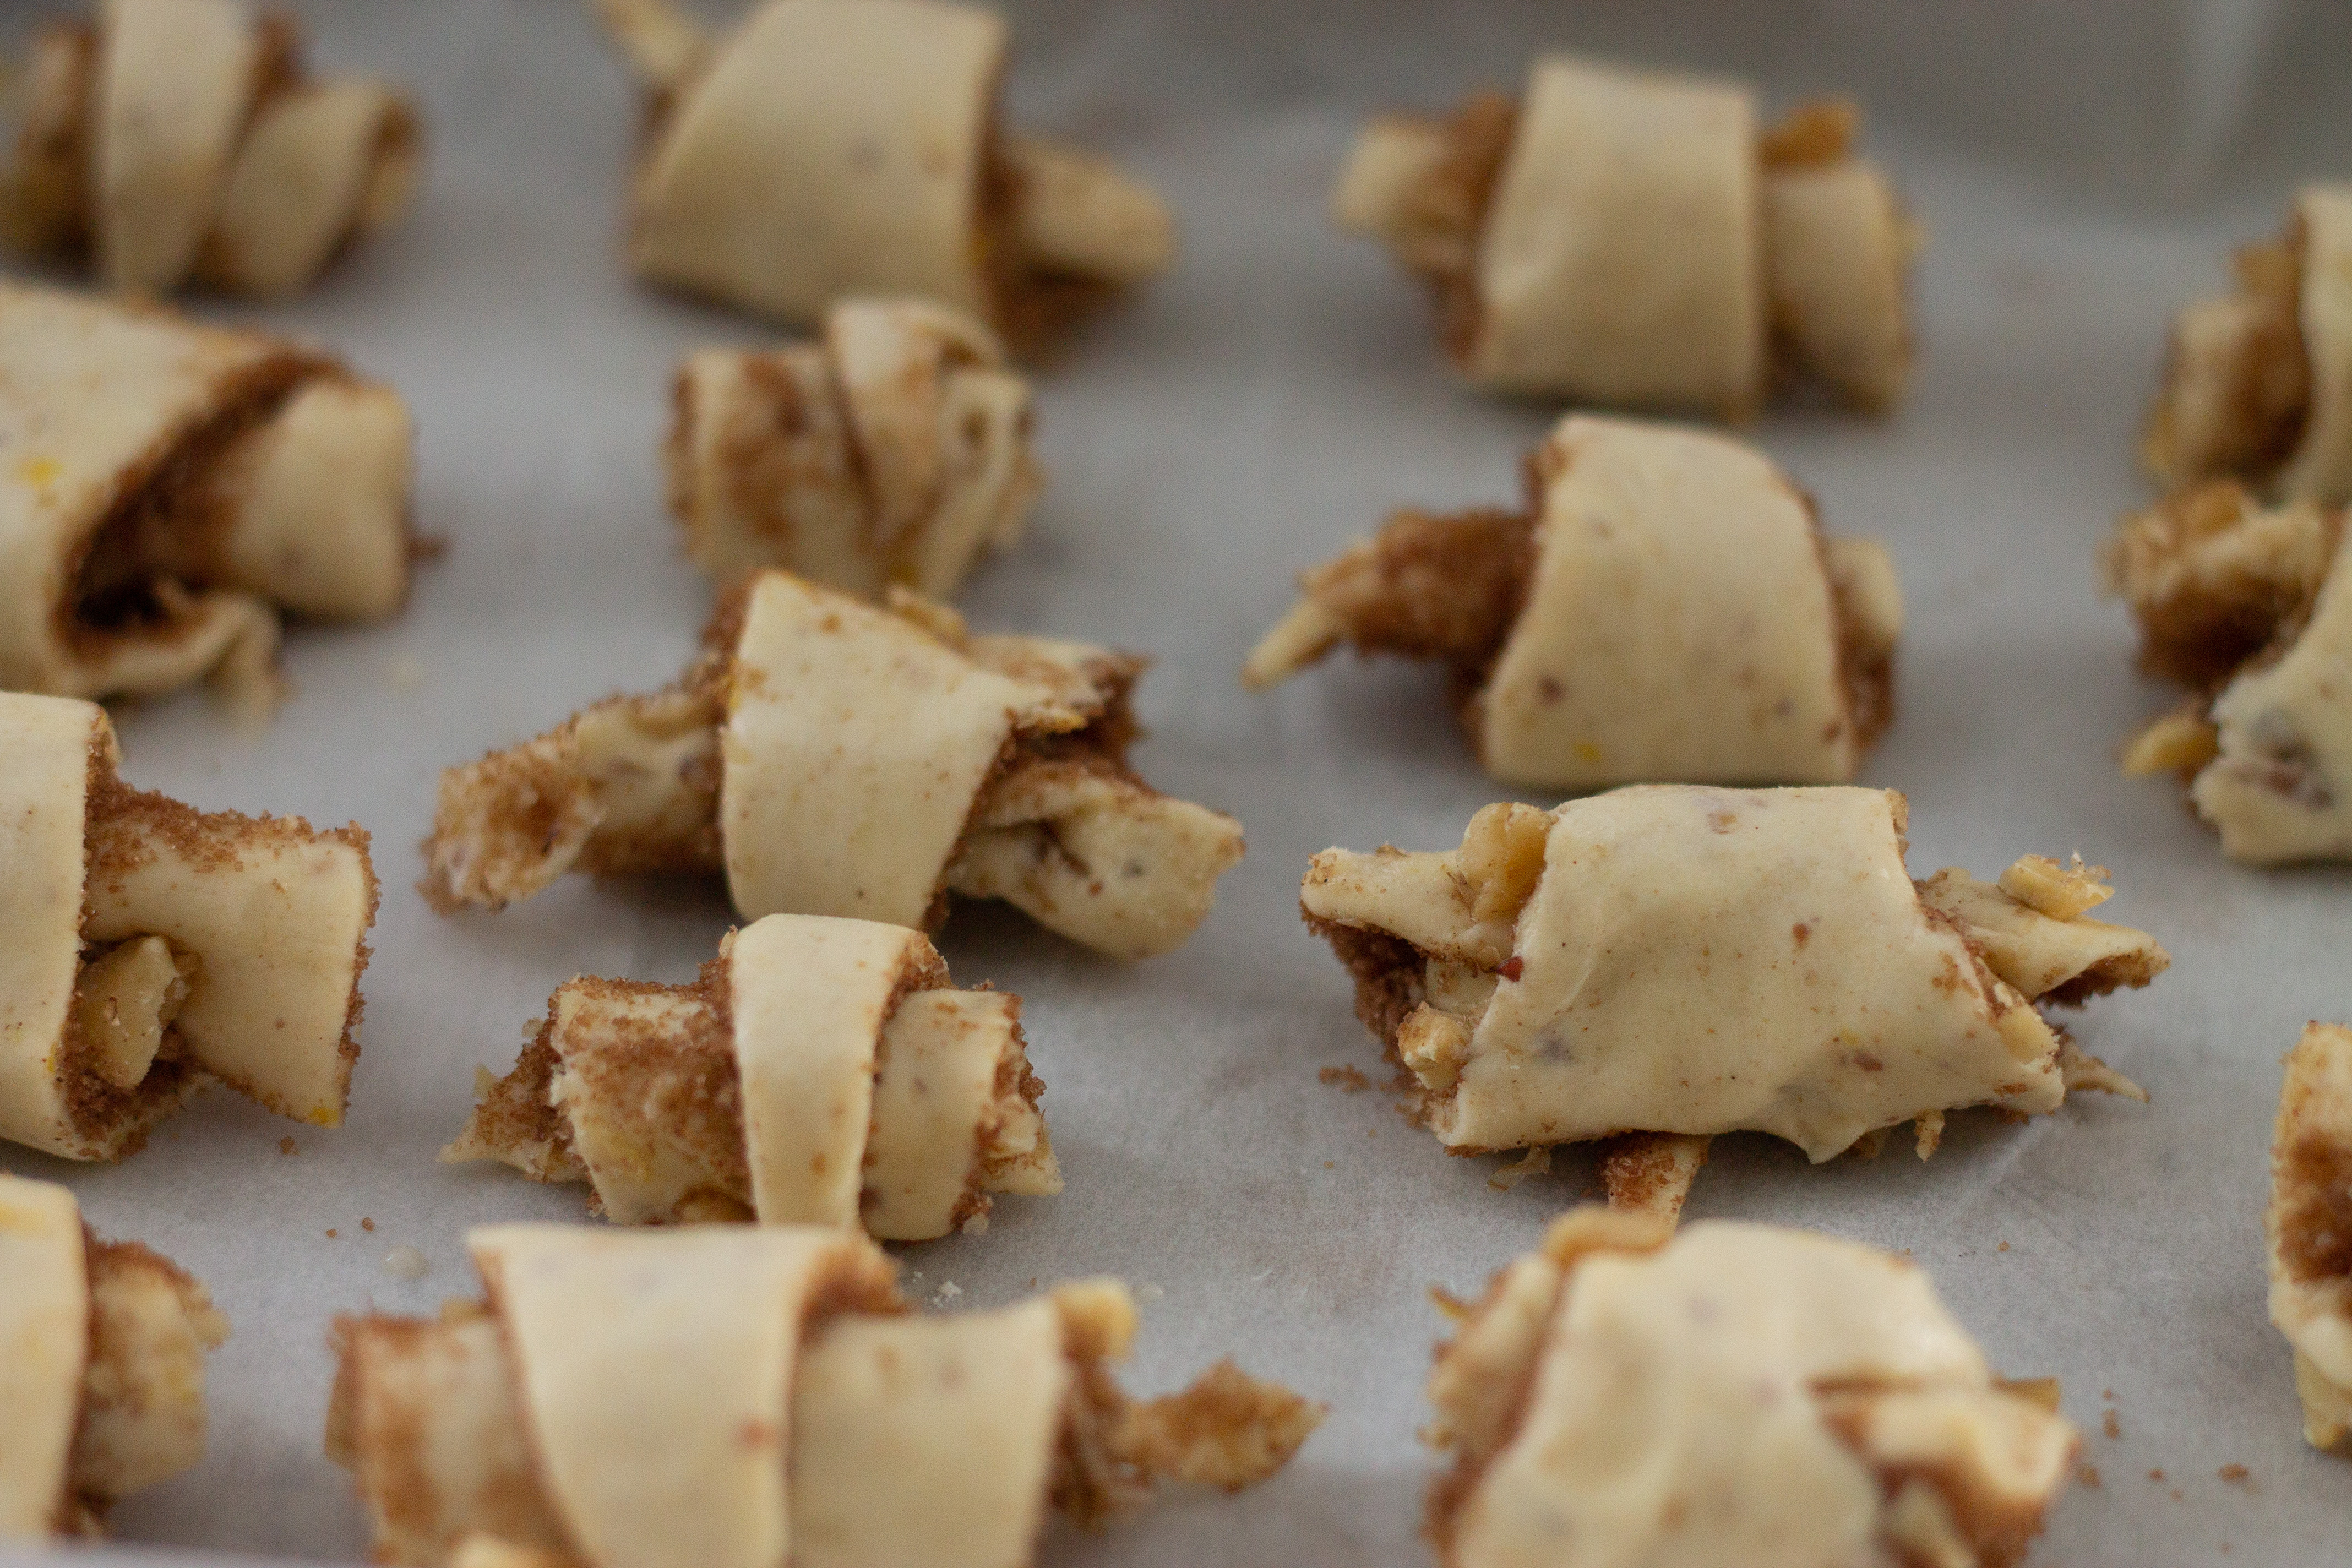 A row of rugelach ready for baking